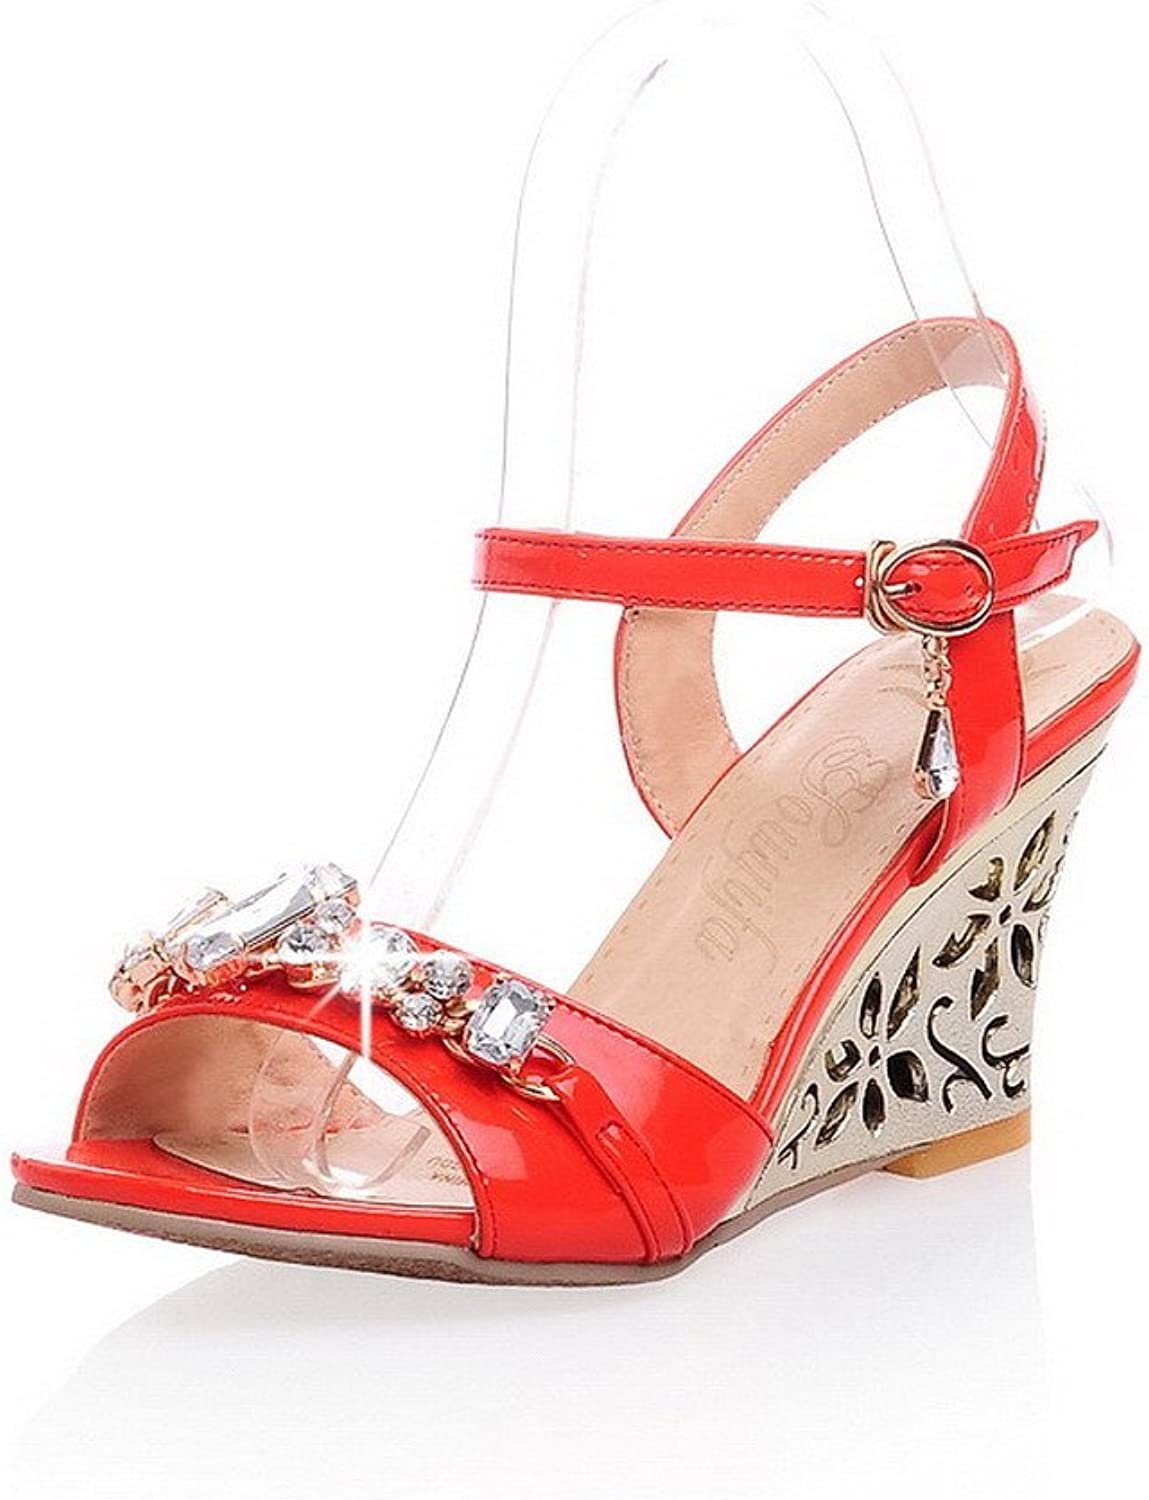 WeiPoot Girl Open Toe High Heel Wedge PU Patent Leather Solid Sandals with Rhinestones, Red, 7.5 B(M) US